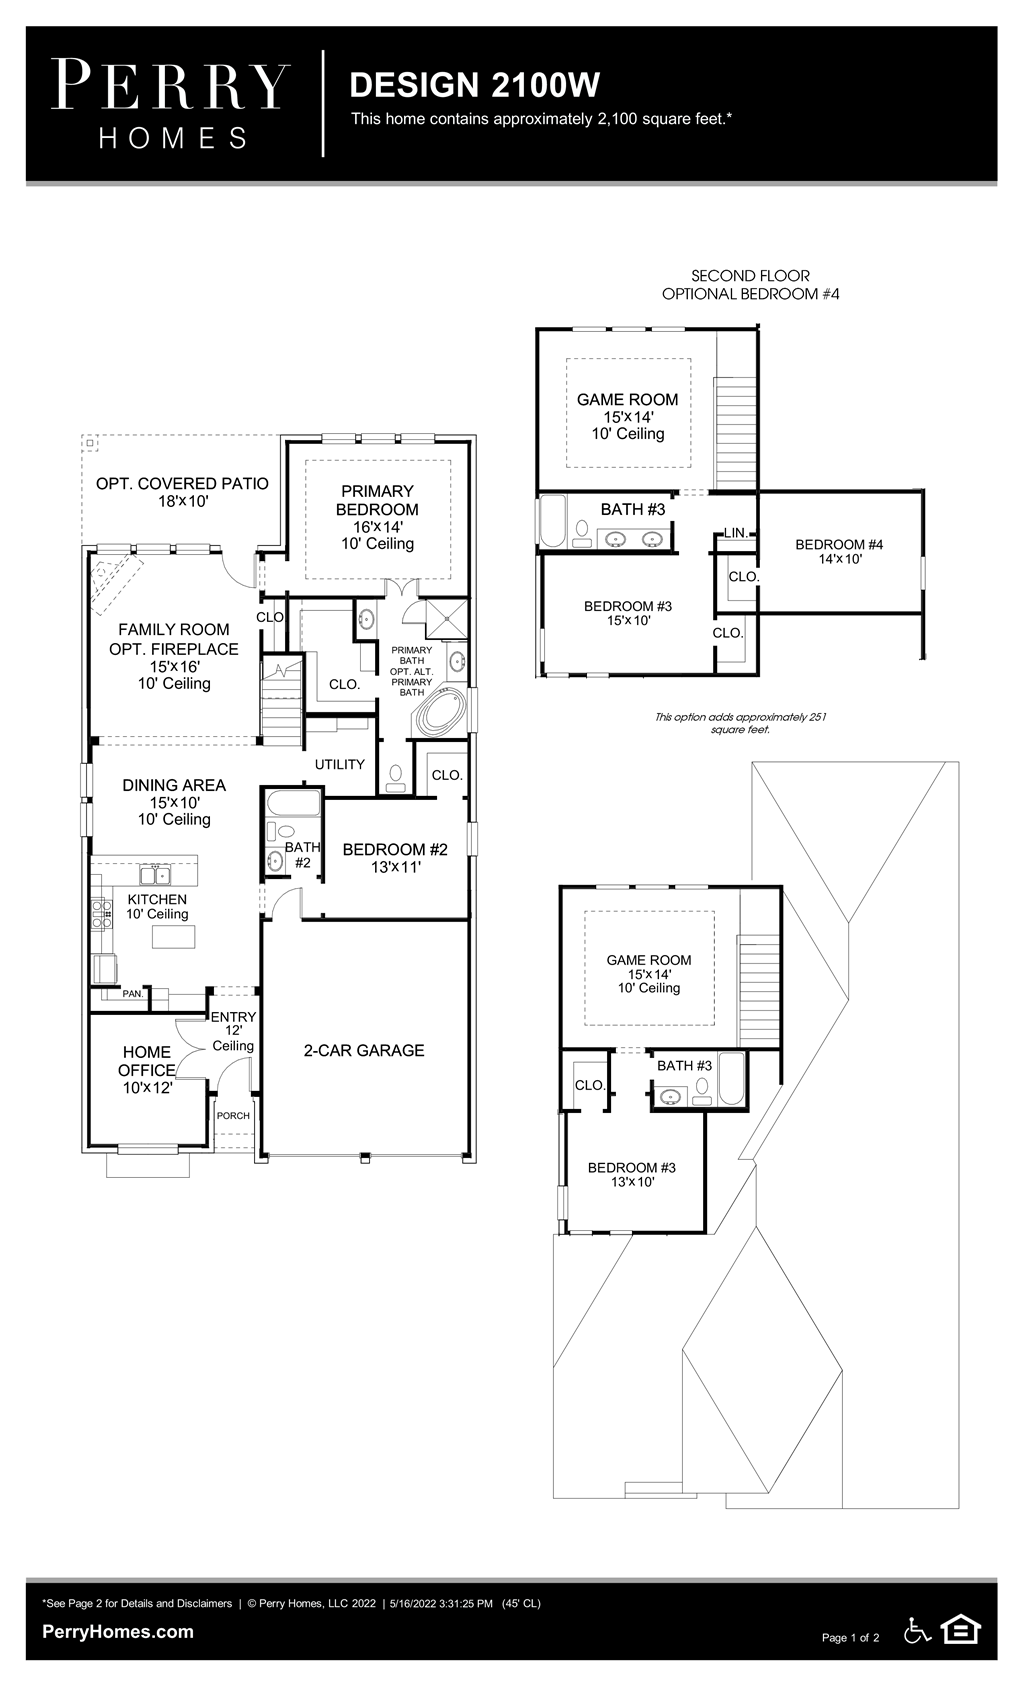 Floor Plan for 2100W